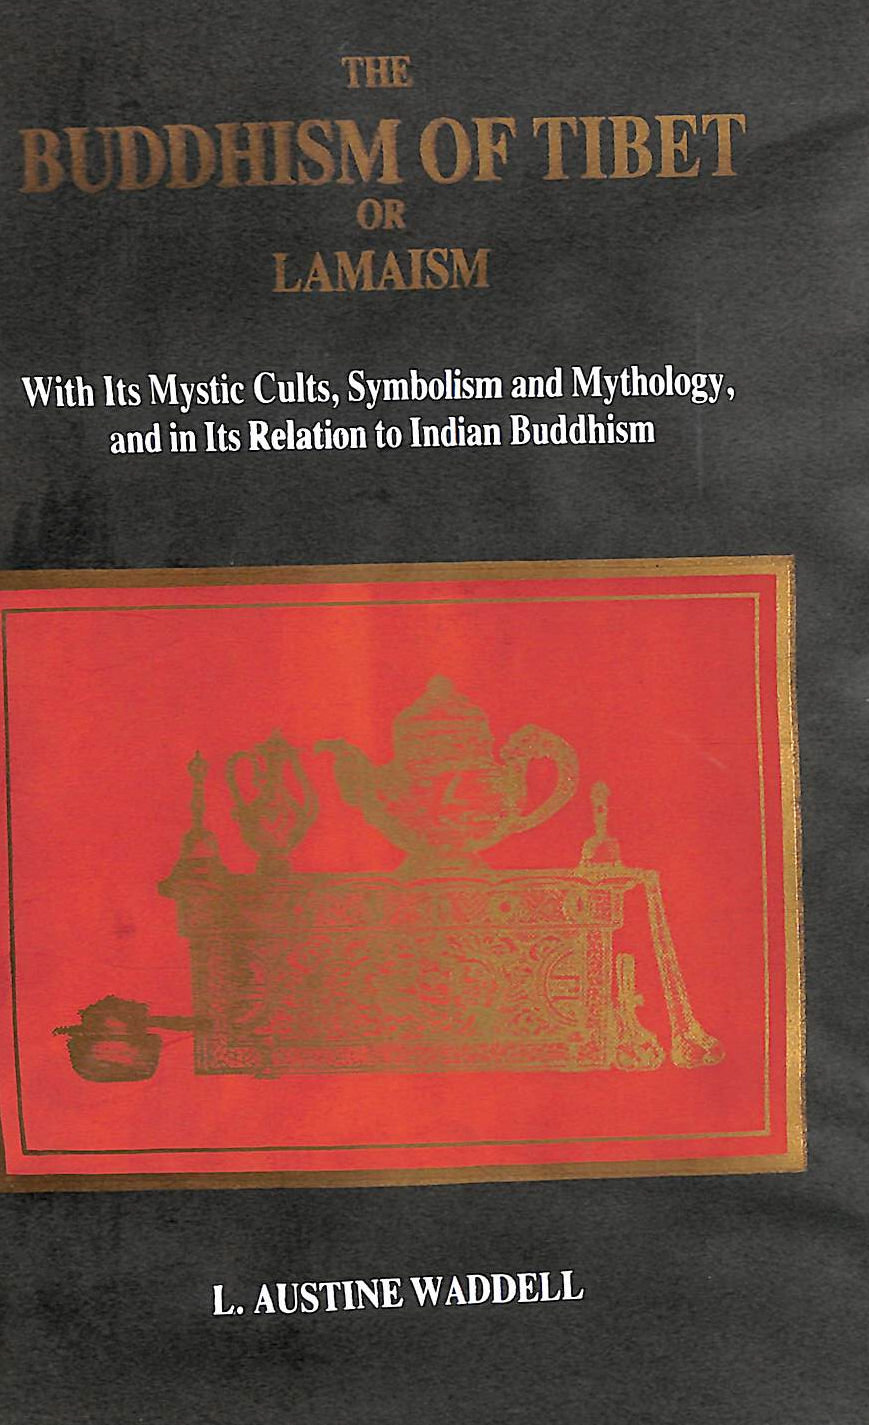 Image for Buddhism Of Tibet, Or Lamaism: With Its Mystic Cults, Symbolism And Mythology